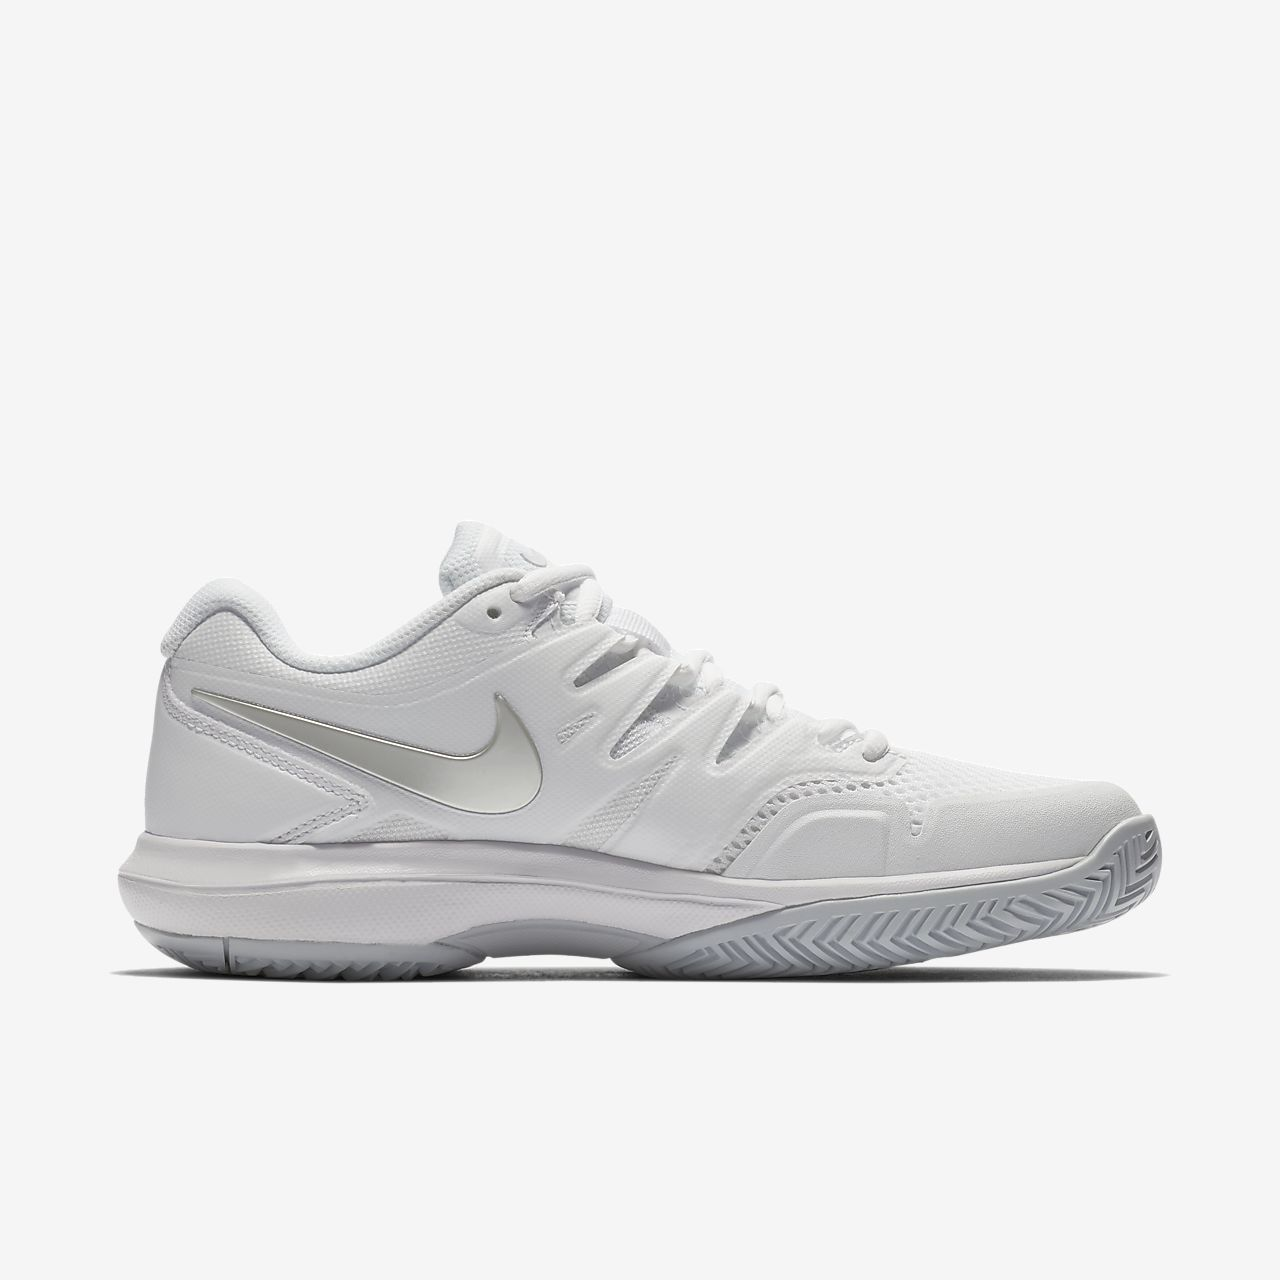 great fit e93a3 6eb7c Nike - Air Zoom Resistance Femmes Chaussure de tennis (blanc) - EU 38 -